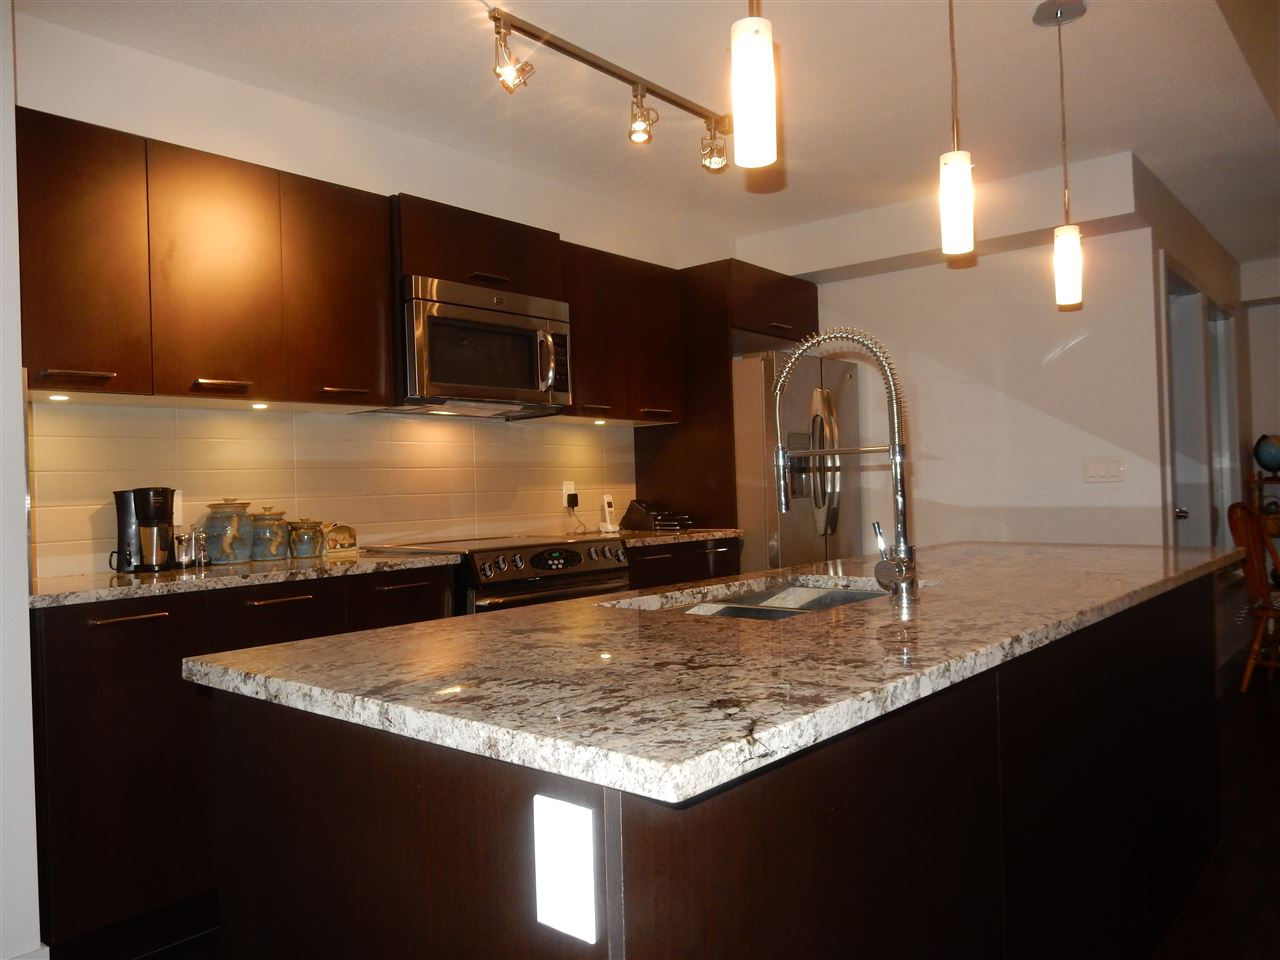 Photo 4: 312 5682 WHARF Avenue in Sechelt: Sechelt District Condo for sale (Sunshine Coast)  : MLS(r) # R2044638